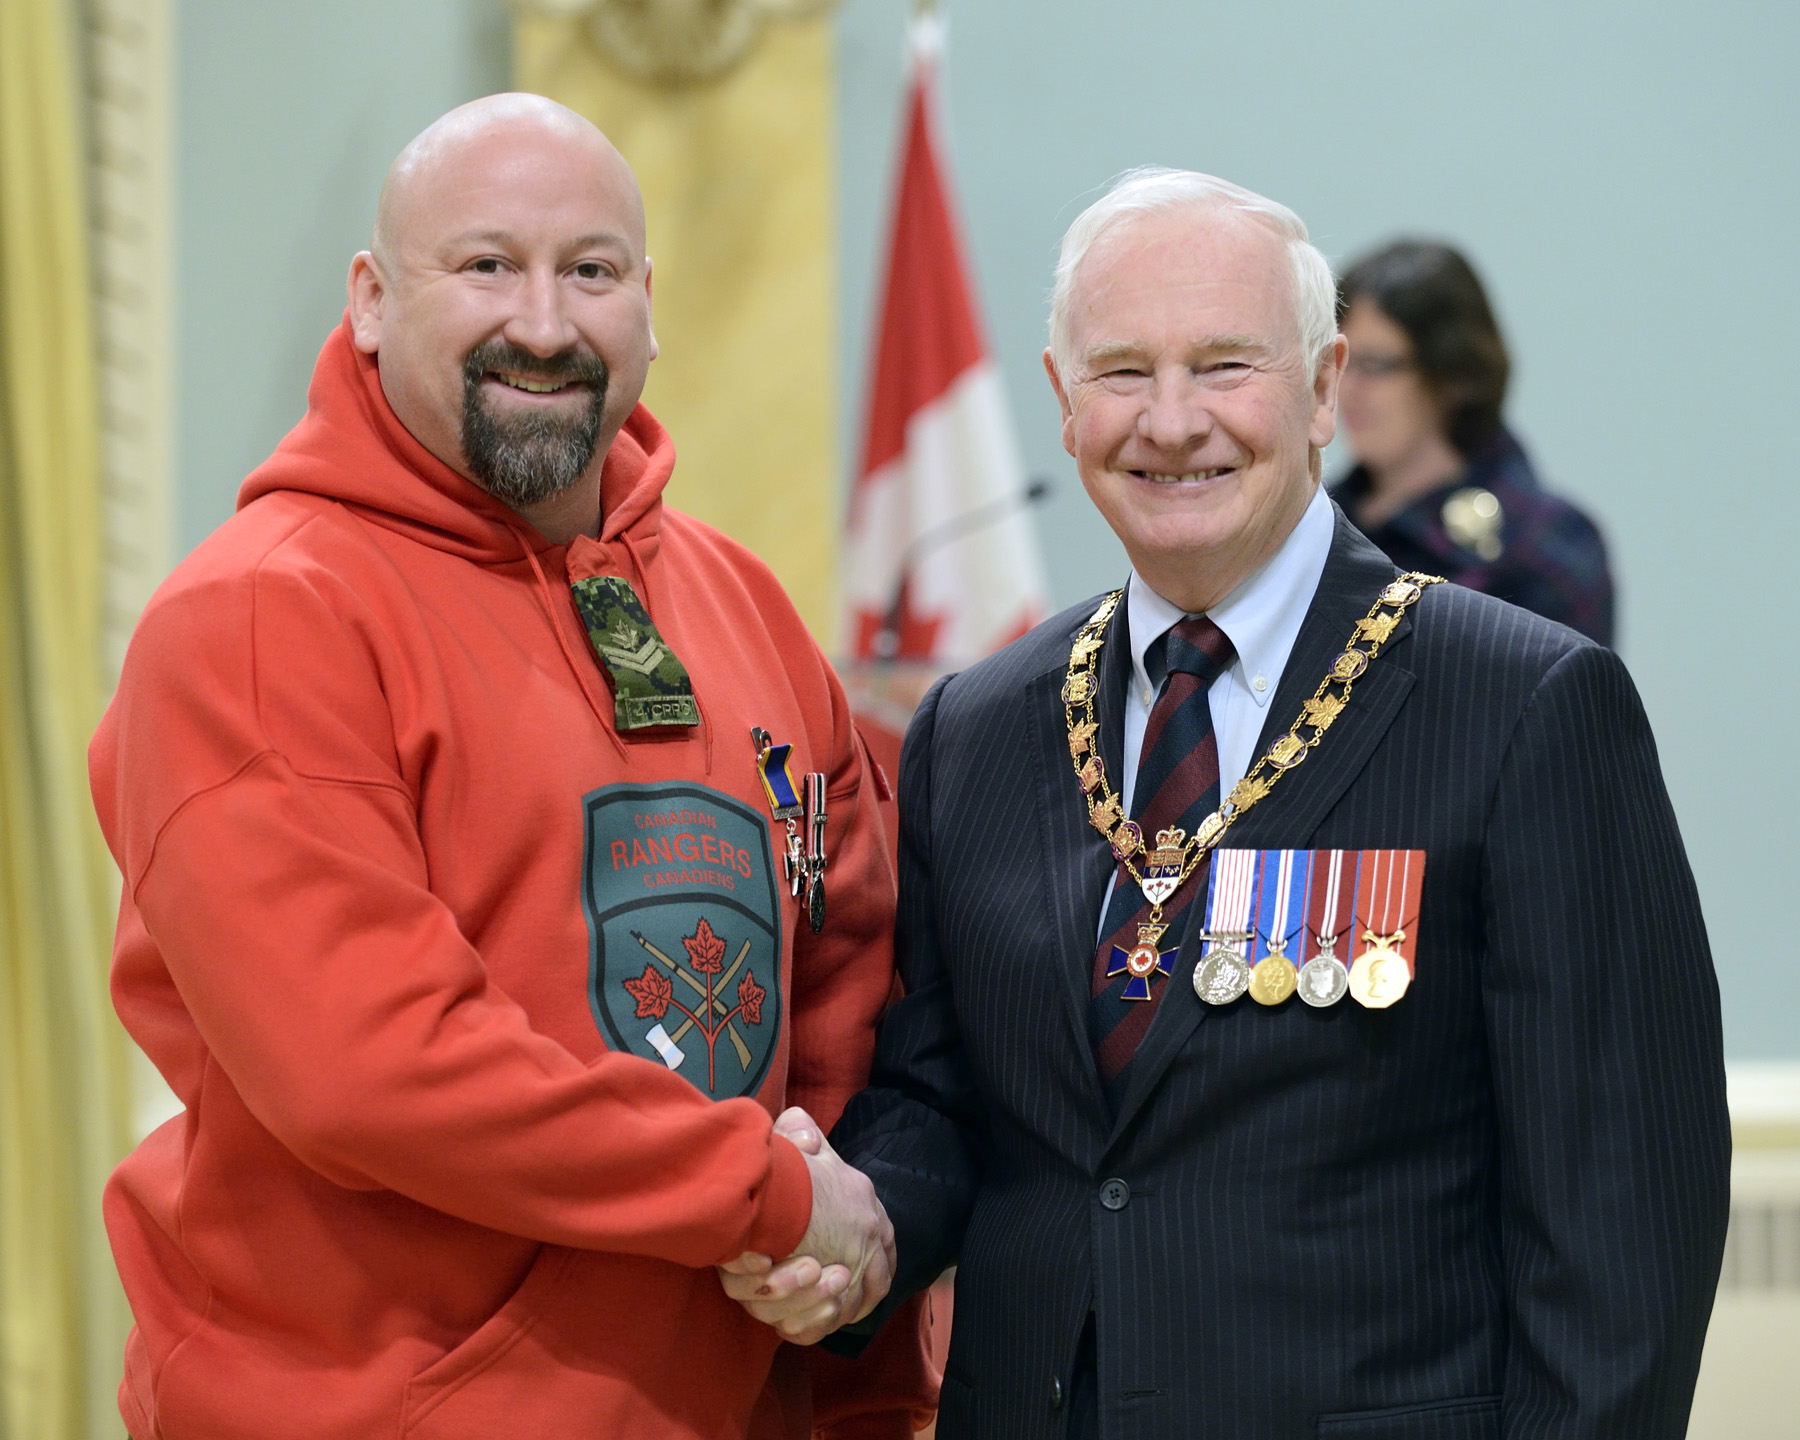 His Excellency presented the Order of Military Merit at the Member level (M.M.M.) to Master Corporal Pierre Bernier, M.M.M., 4th Canadian Ranger Patrol Group Detachment Winnipeg (Winnipeg, Man.).